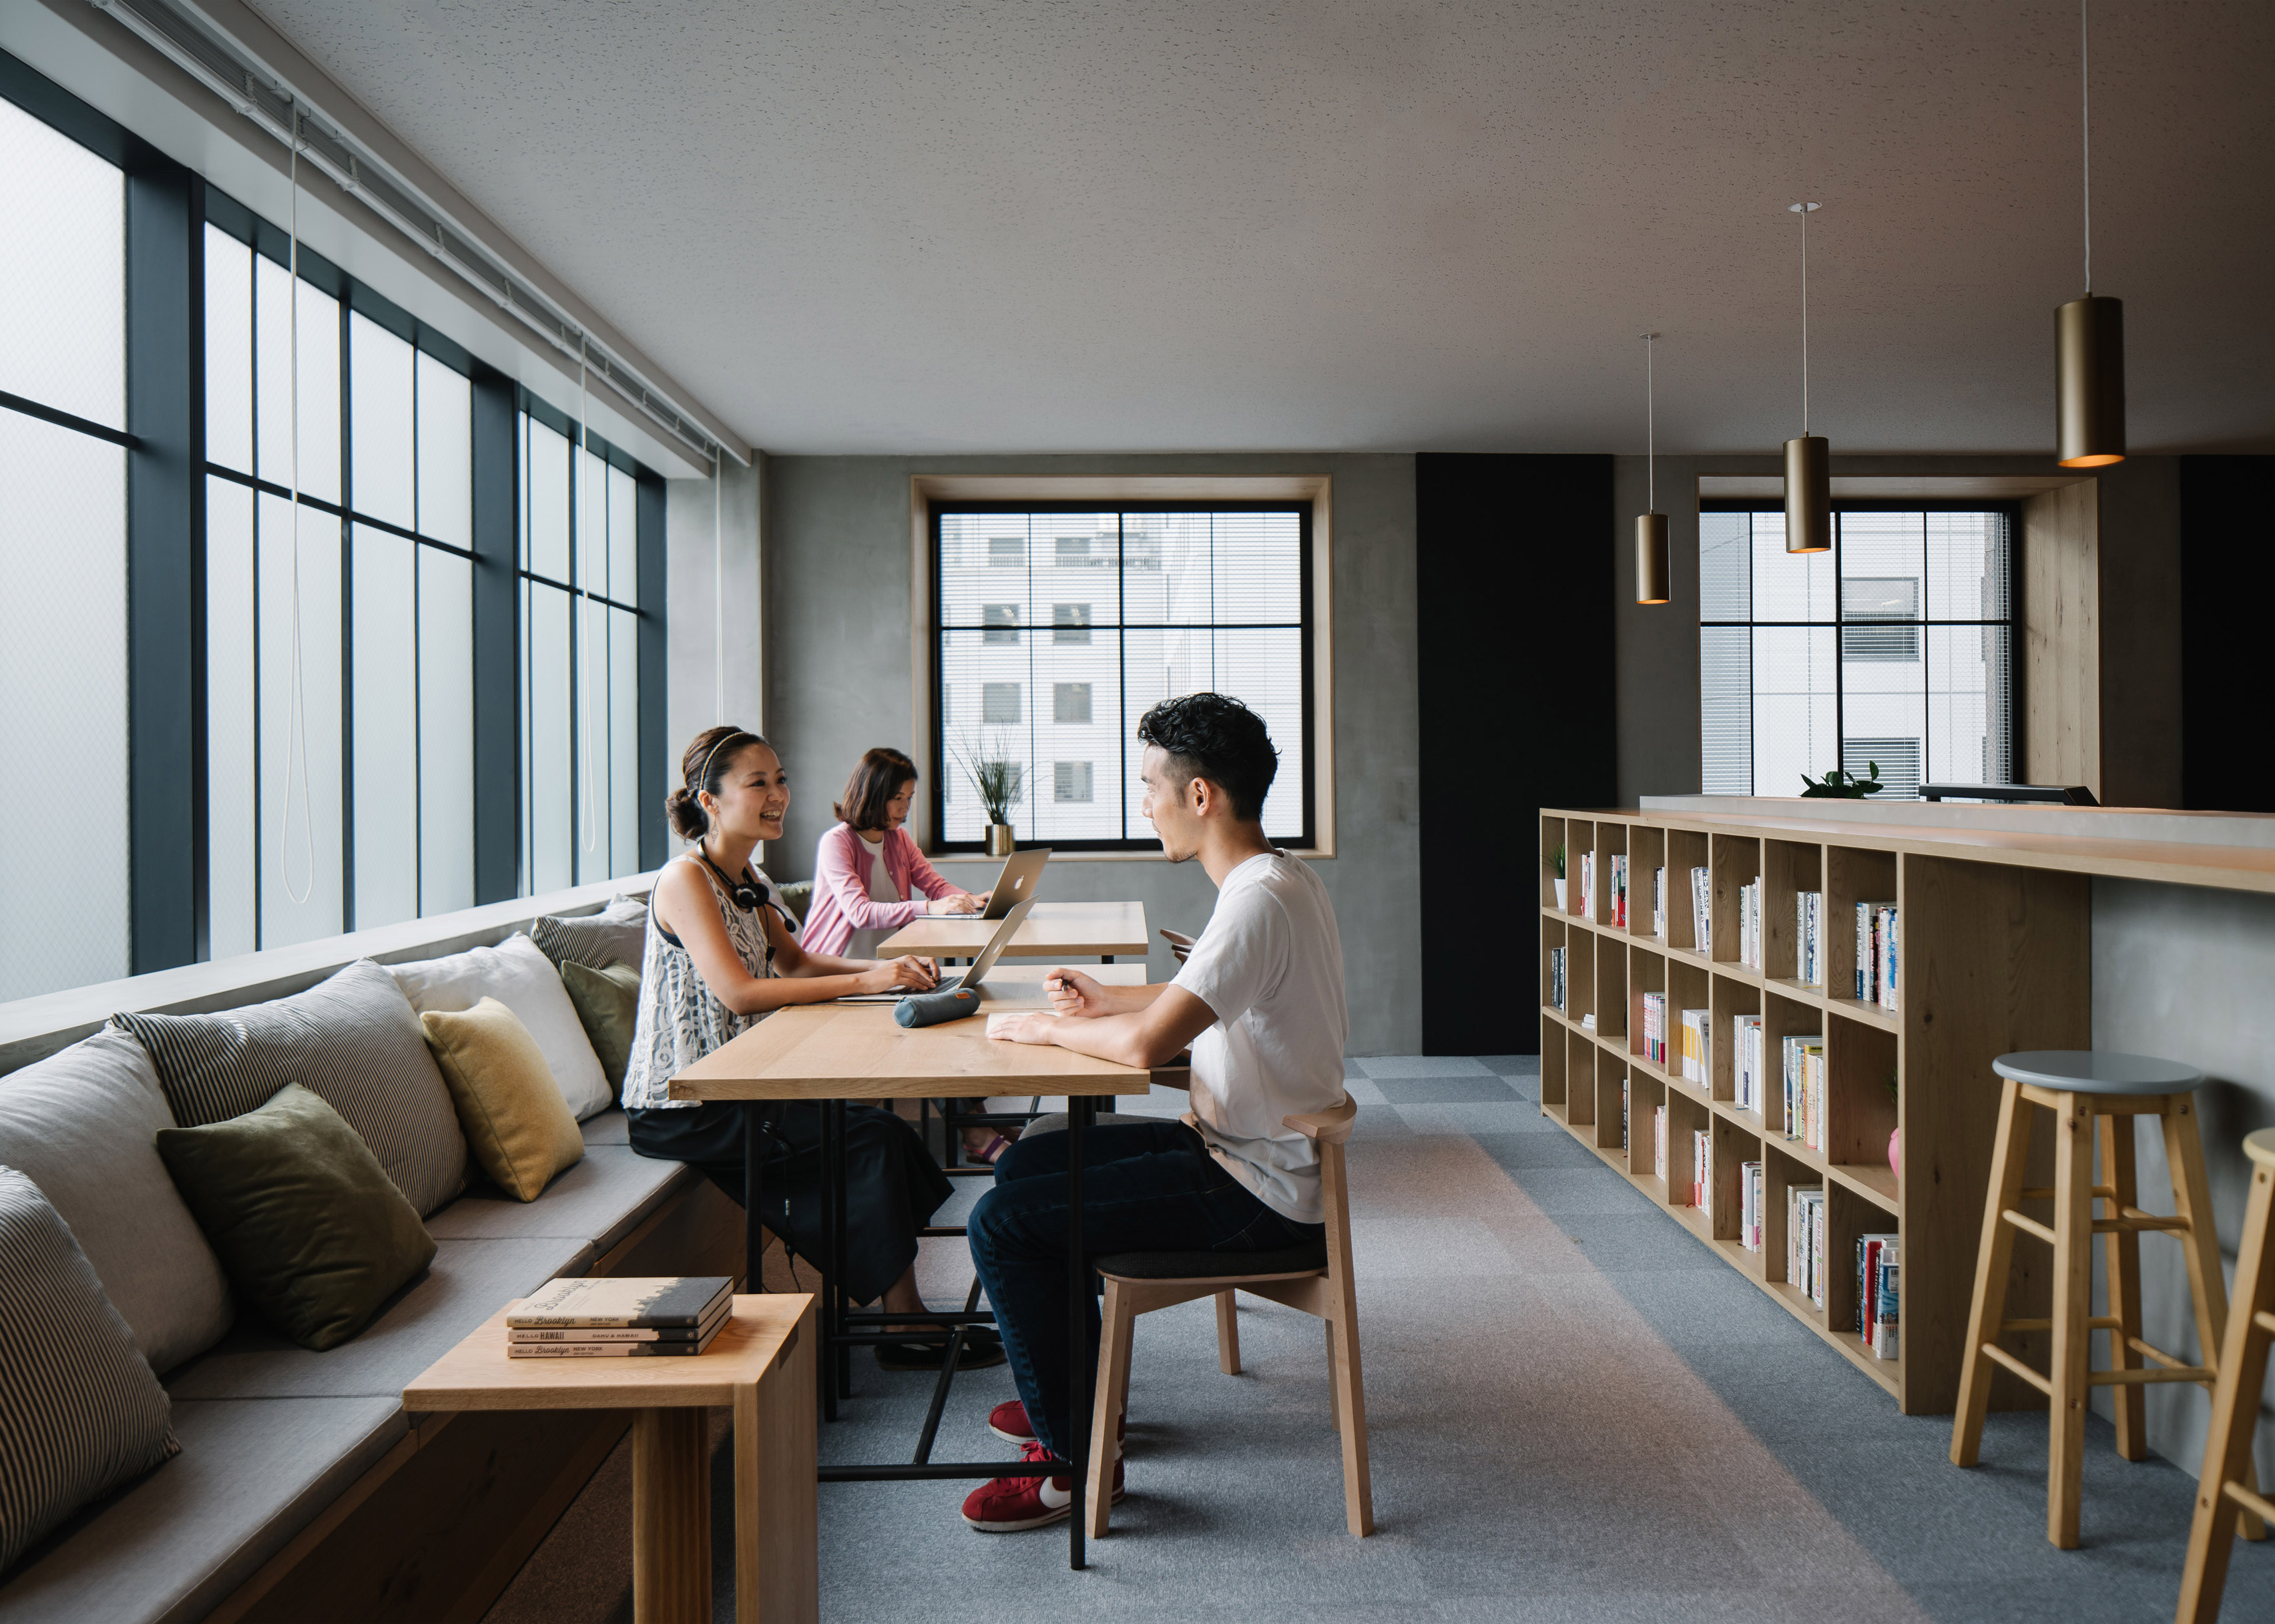 Airbnb's Tokyo office is based on a local neighbourhood